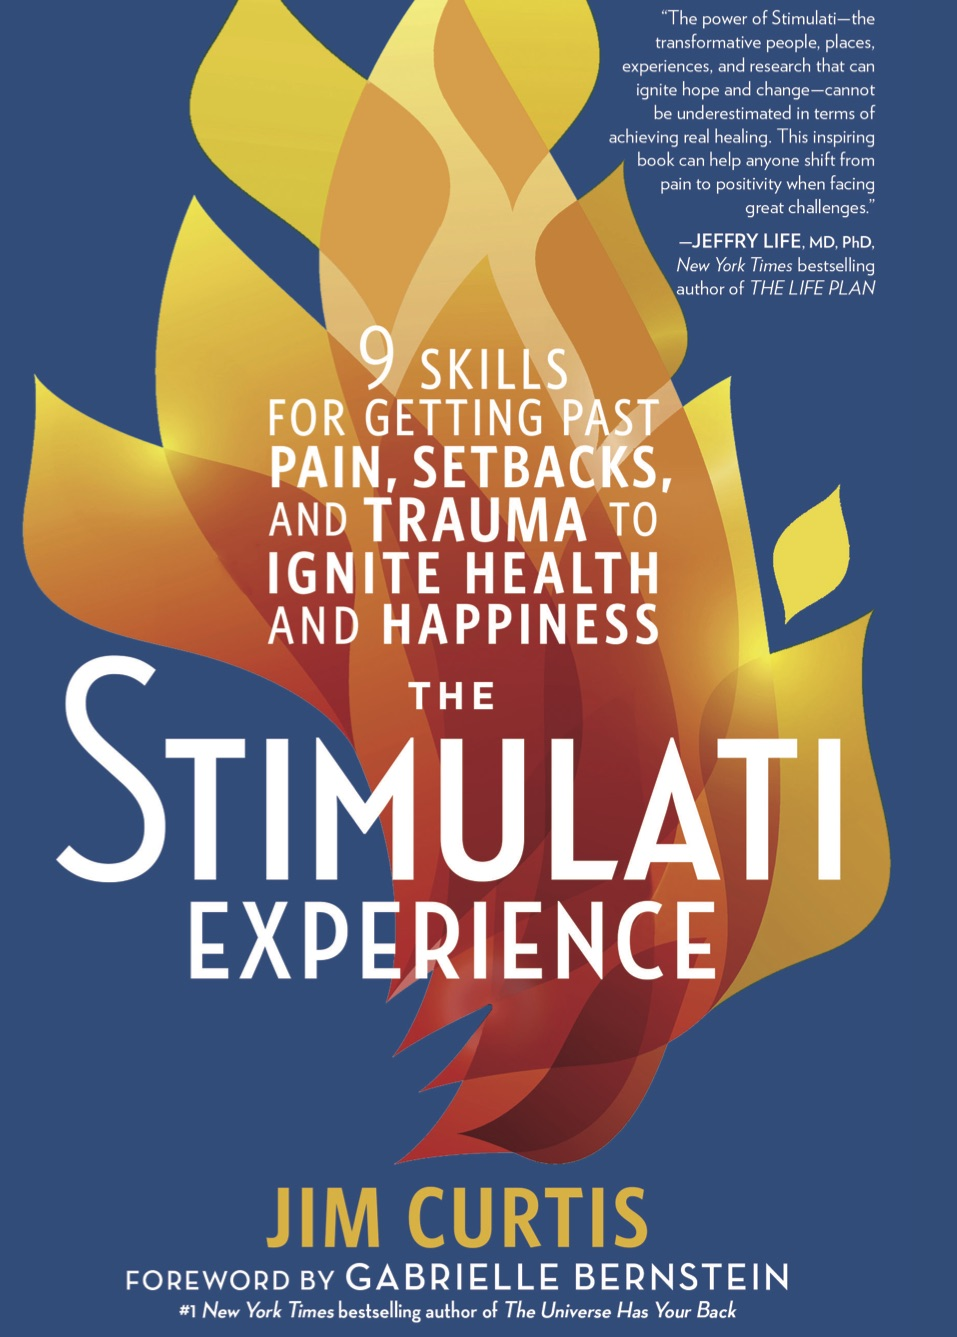 Book Launch: The Stimulati Experience by Jim Curtis